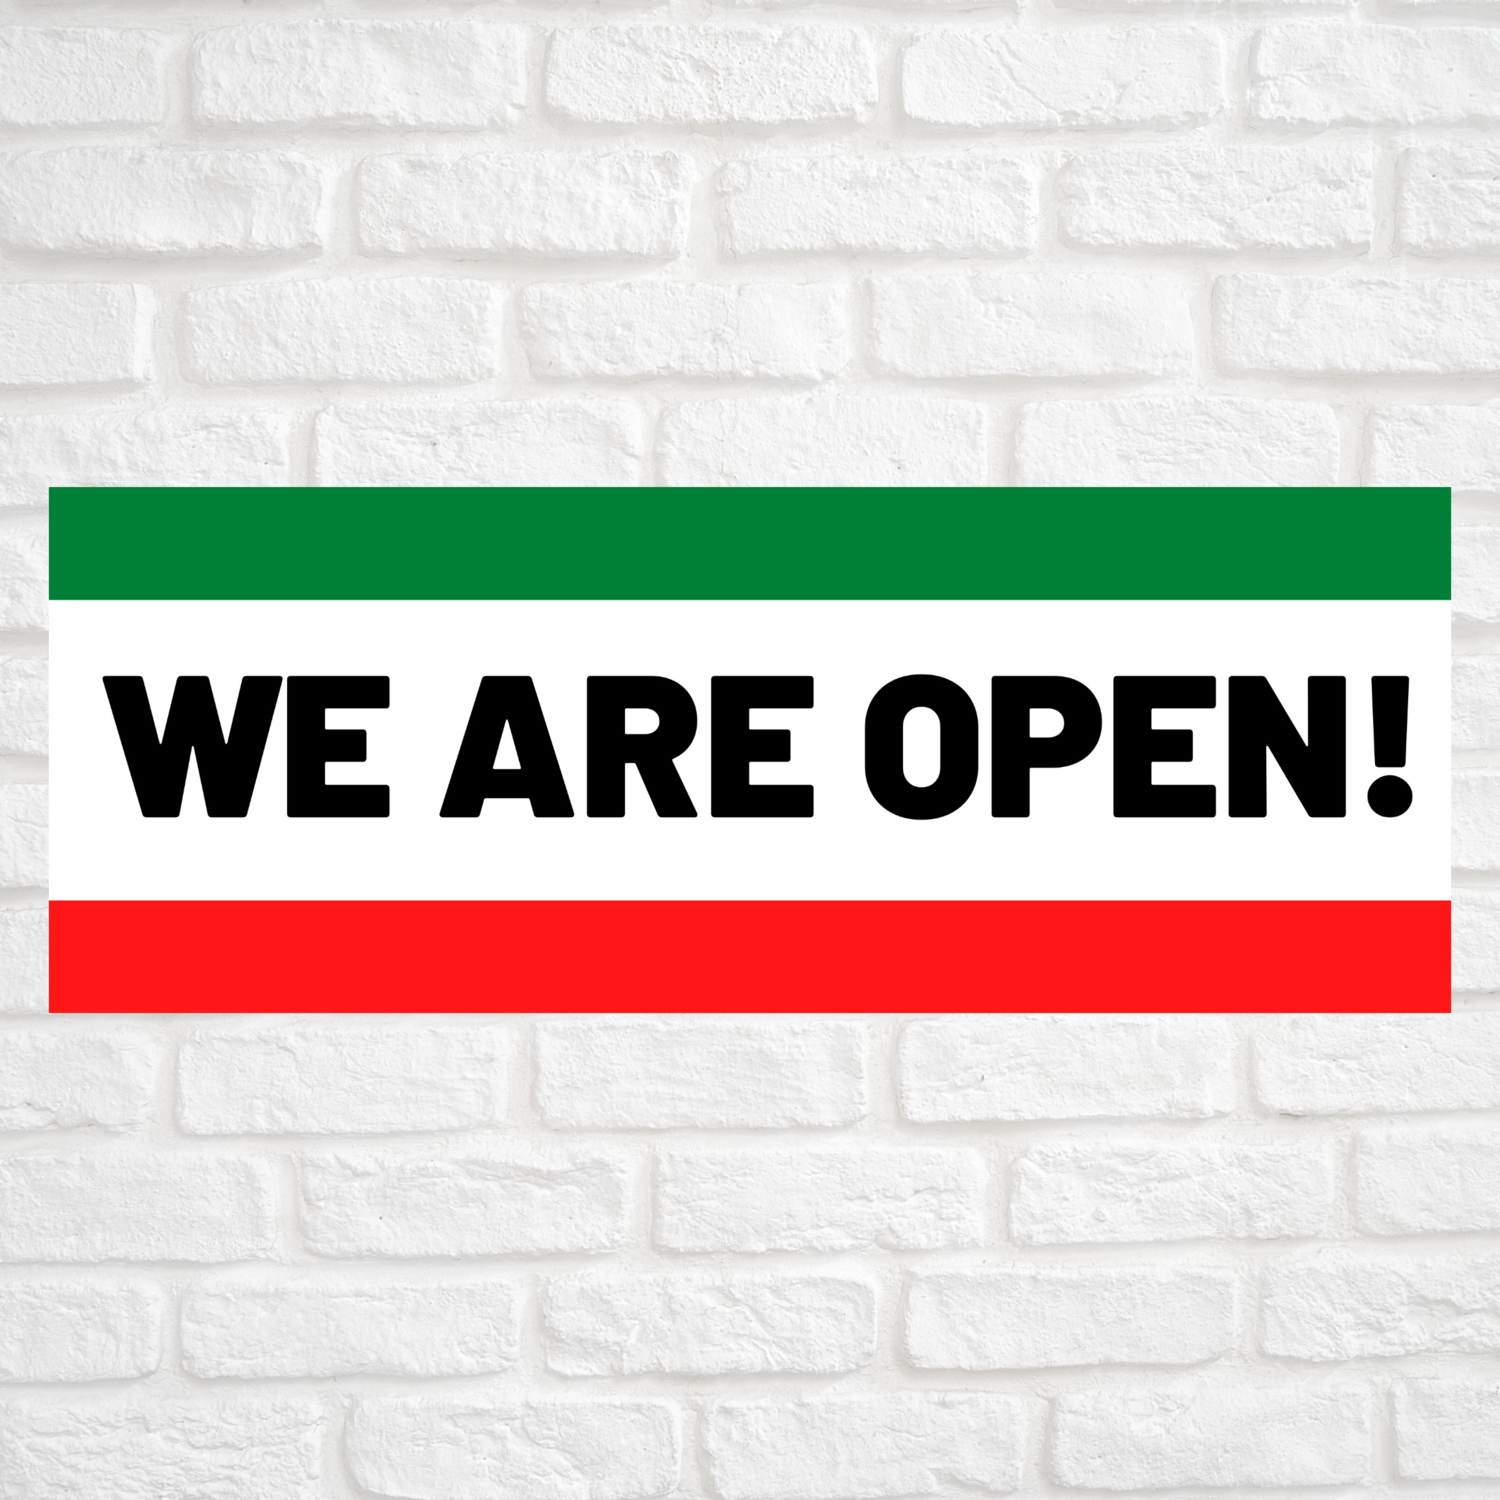 We Are Open! Green/Red